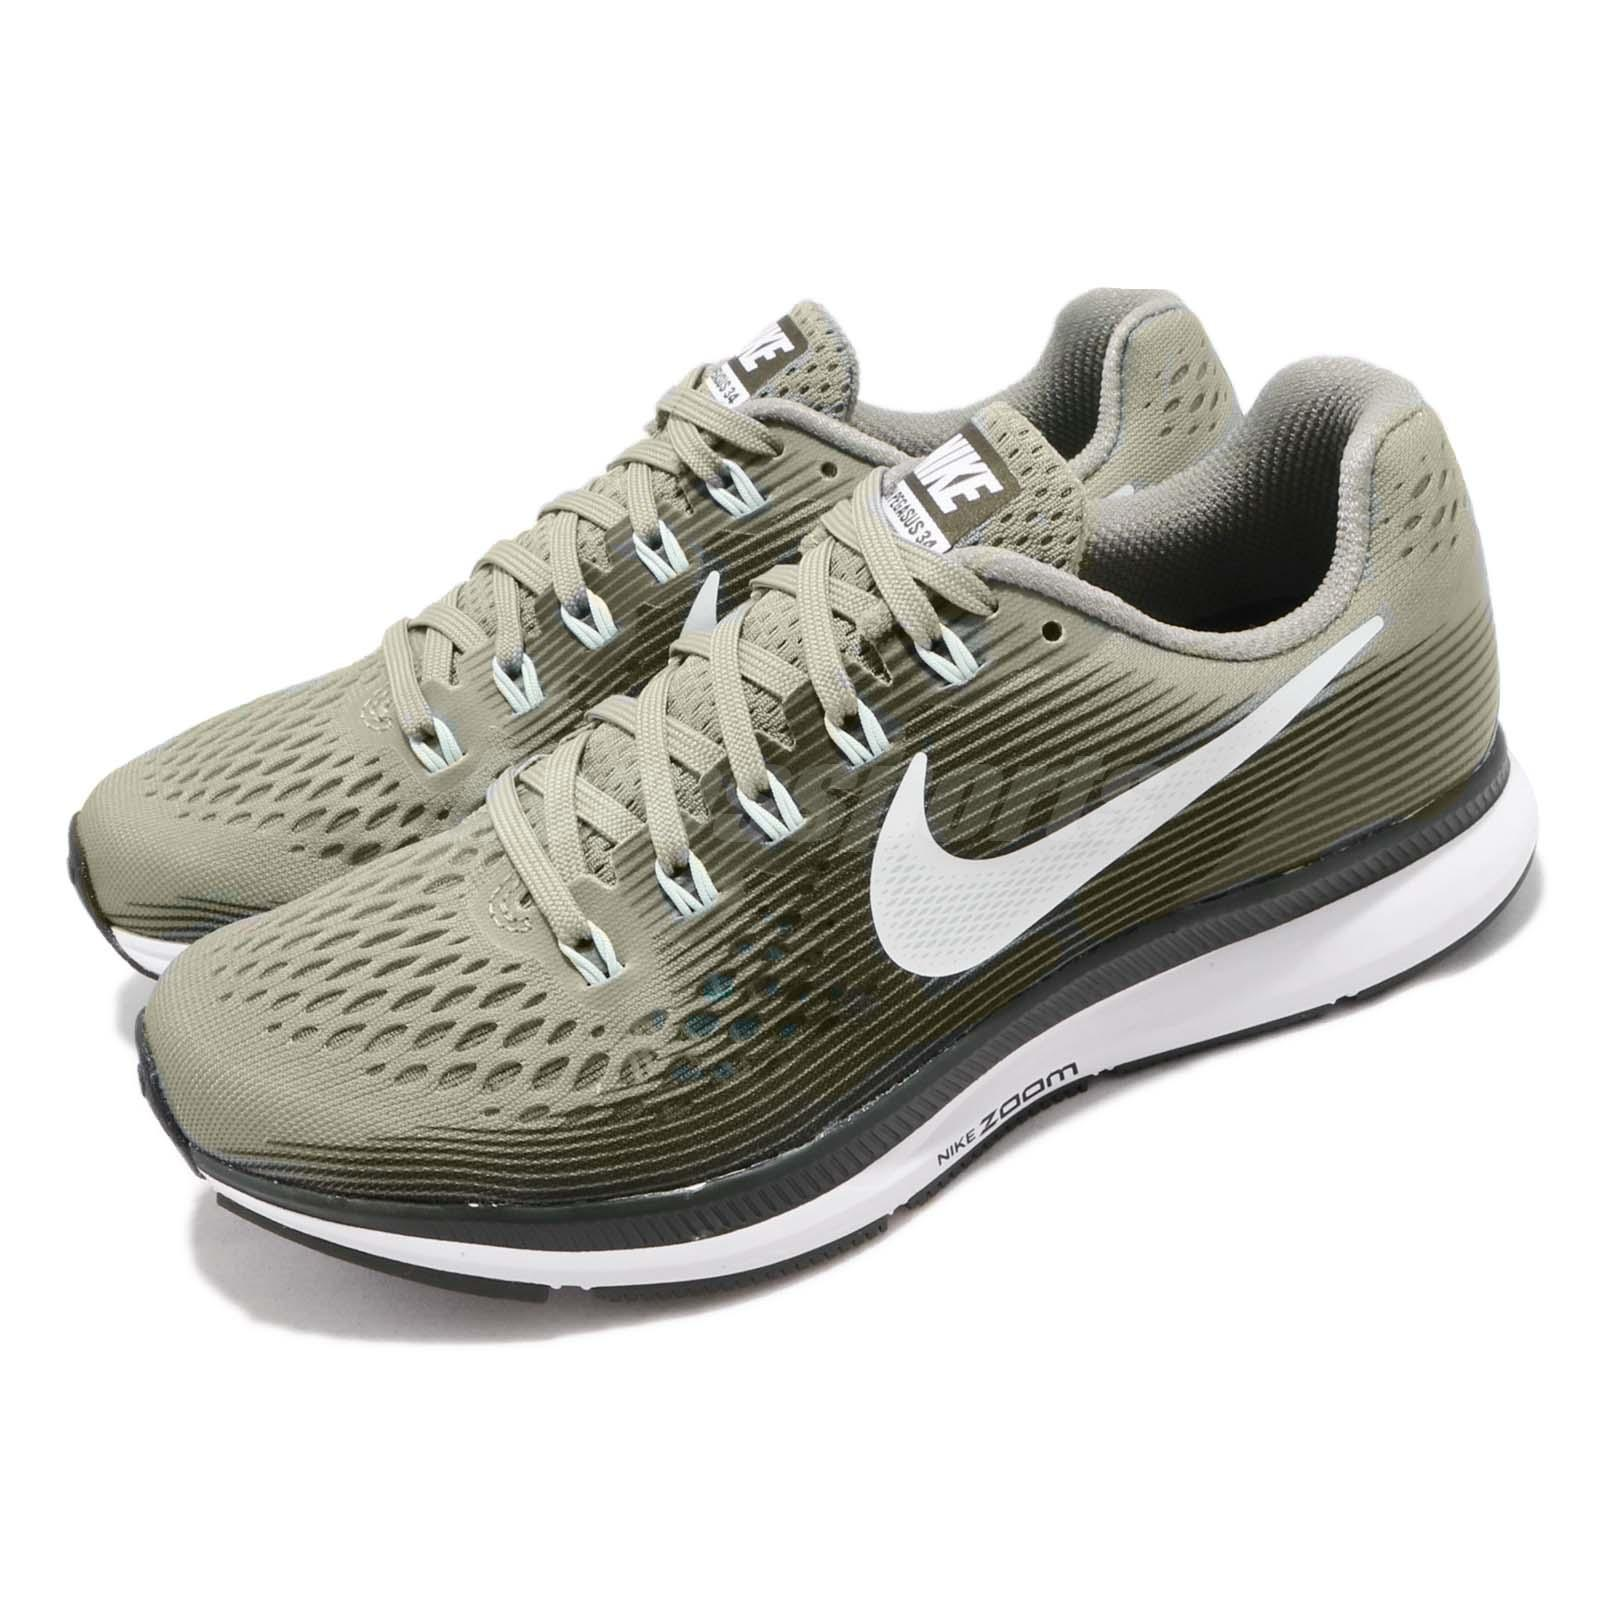 new concept e8b8a 7bcf5 Details about Nike Wmns Air Zoom Pegasus 34 Dark Stucco Green Women Running  Shoes 880560-007